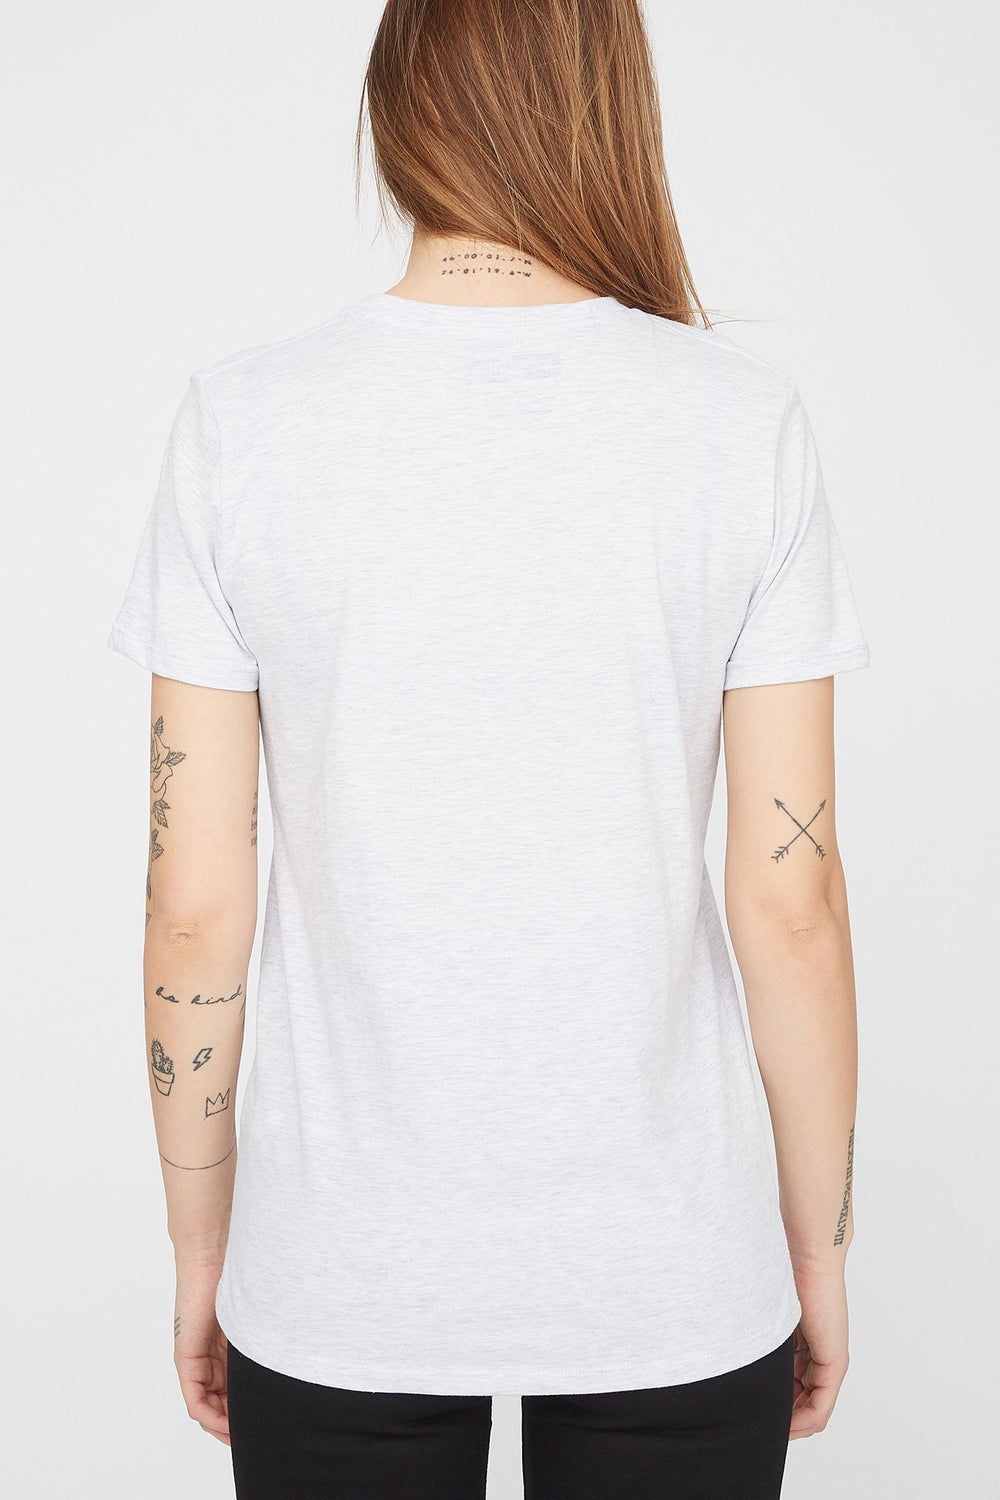 Zoo York Womens Puff Print Gradient Logo T-Shirt Oatmeal